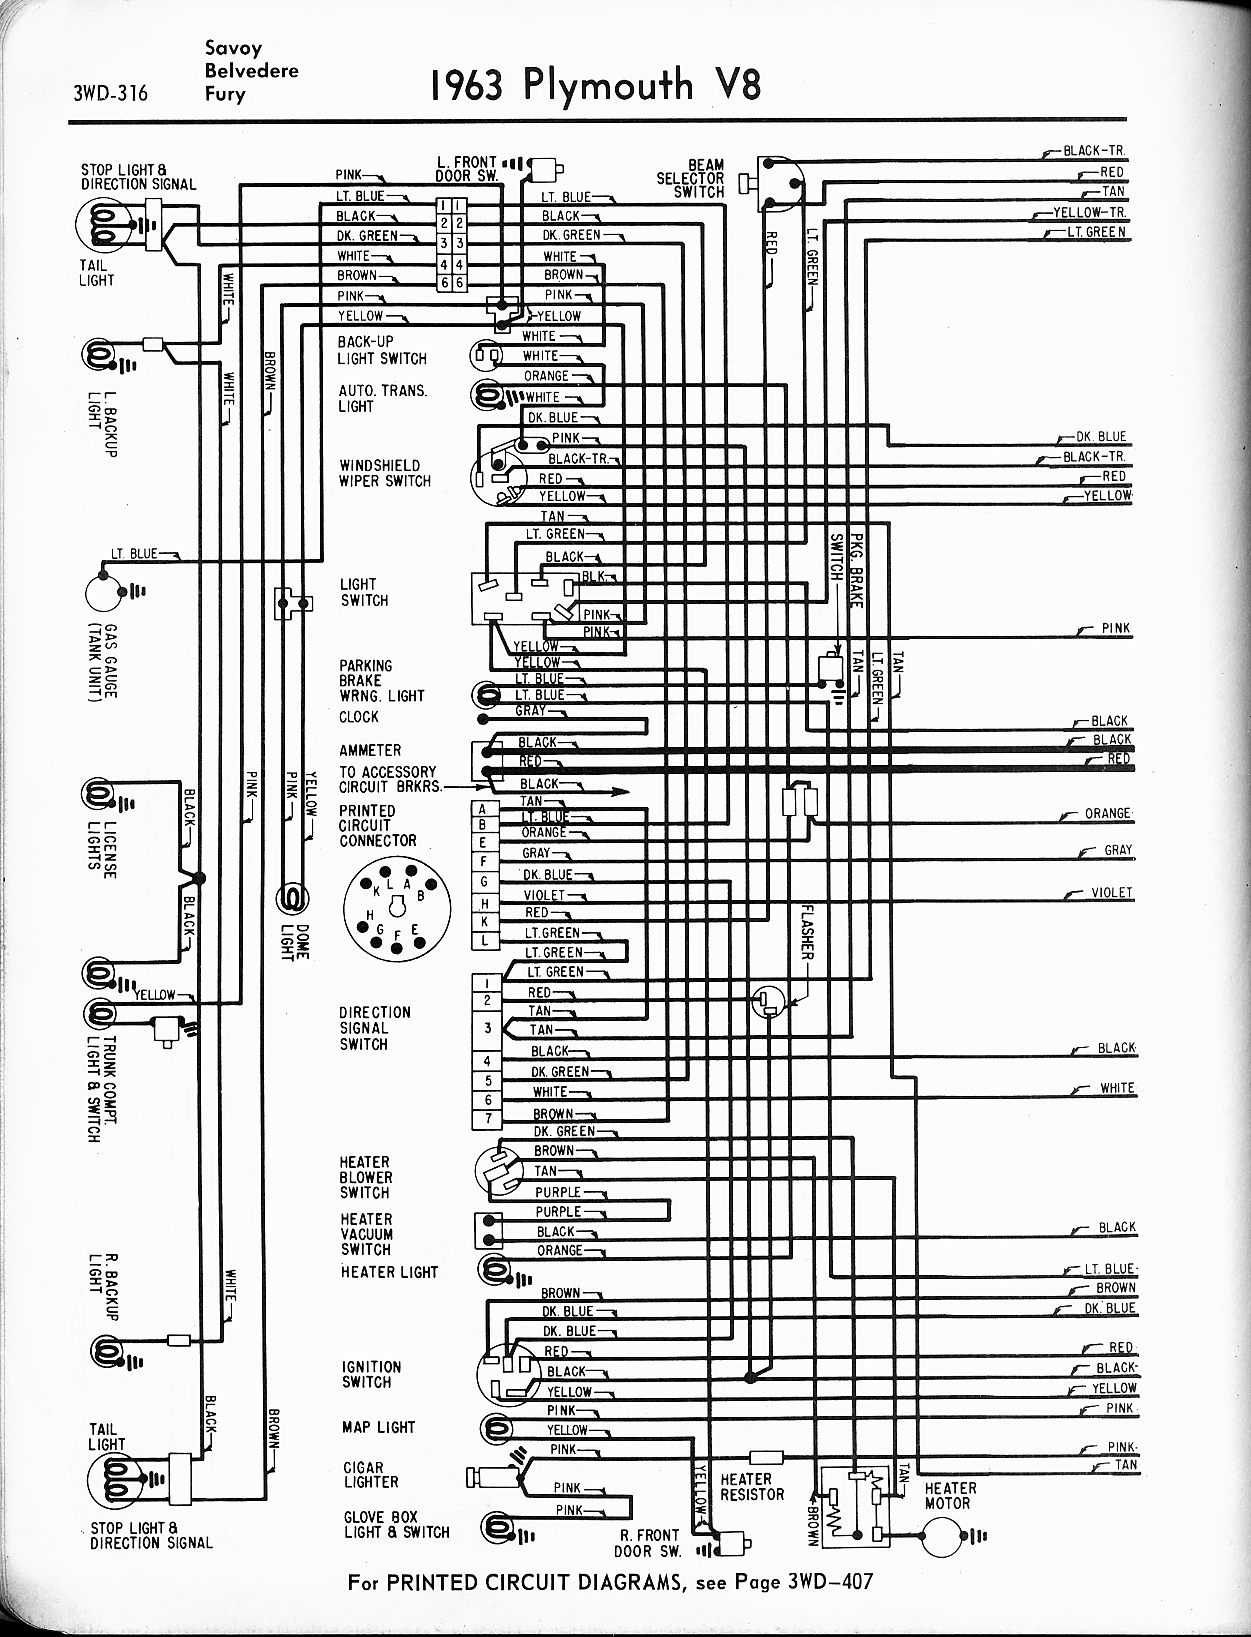 1965 Catalina Wiring Diagram Free Picture Schematic Daily Update Suzuki Samurai Fuse Box Location 1956 Plymouth The Old Car Manual Project Rh Oldcarmanualproject Com